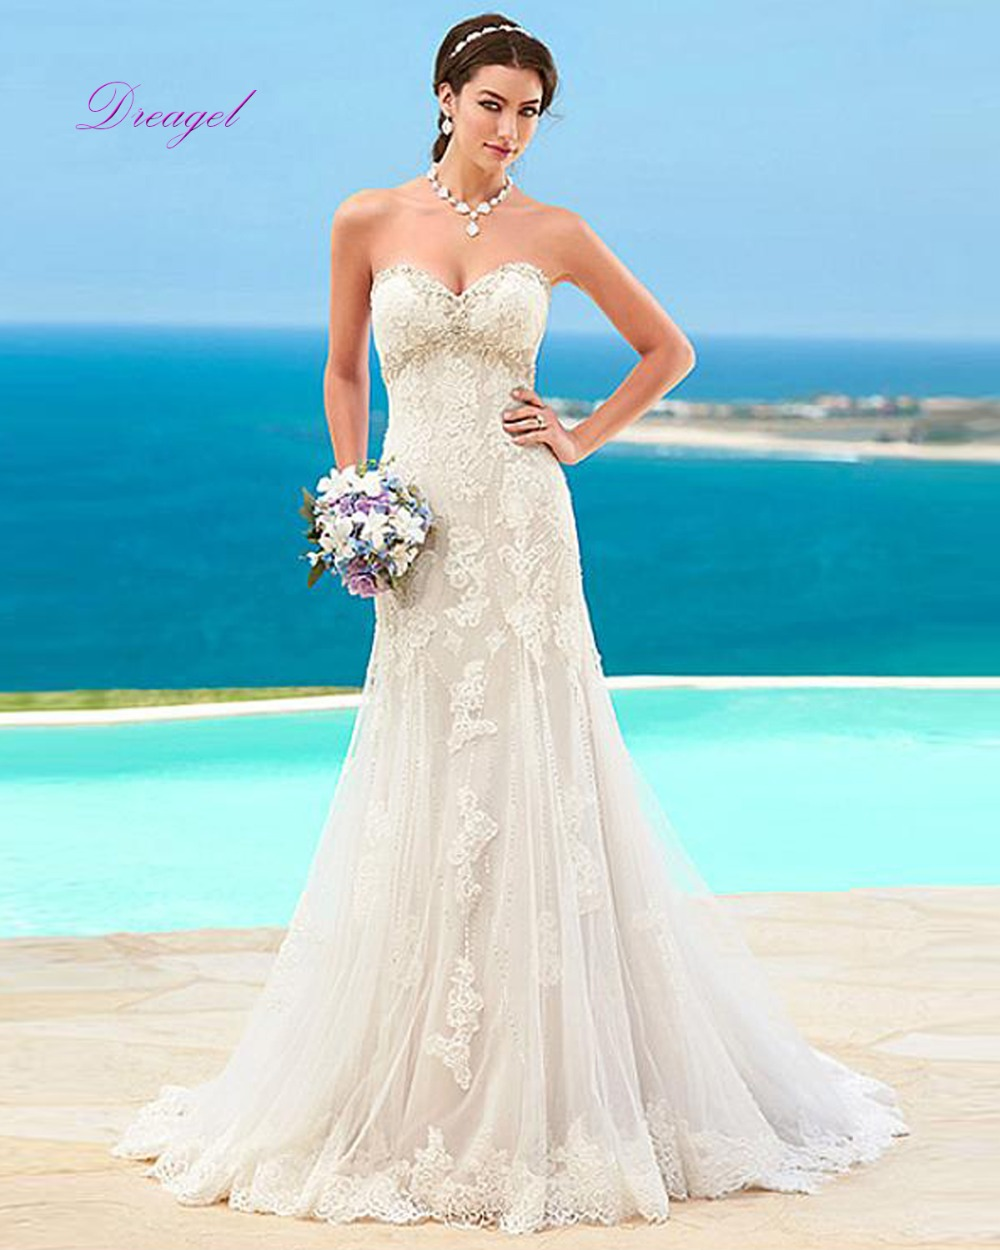 Baratos Simple Y Barato Playa Vestido de Novia 2017 Correas de ...